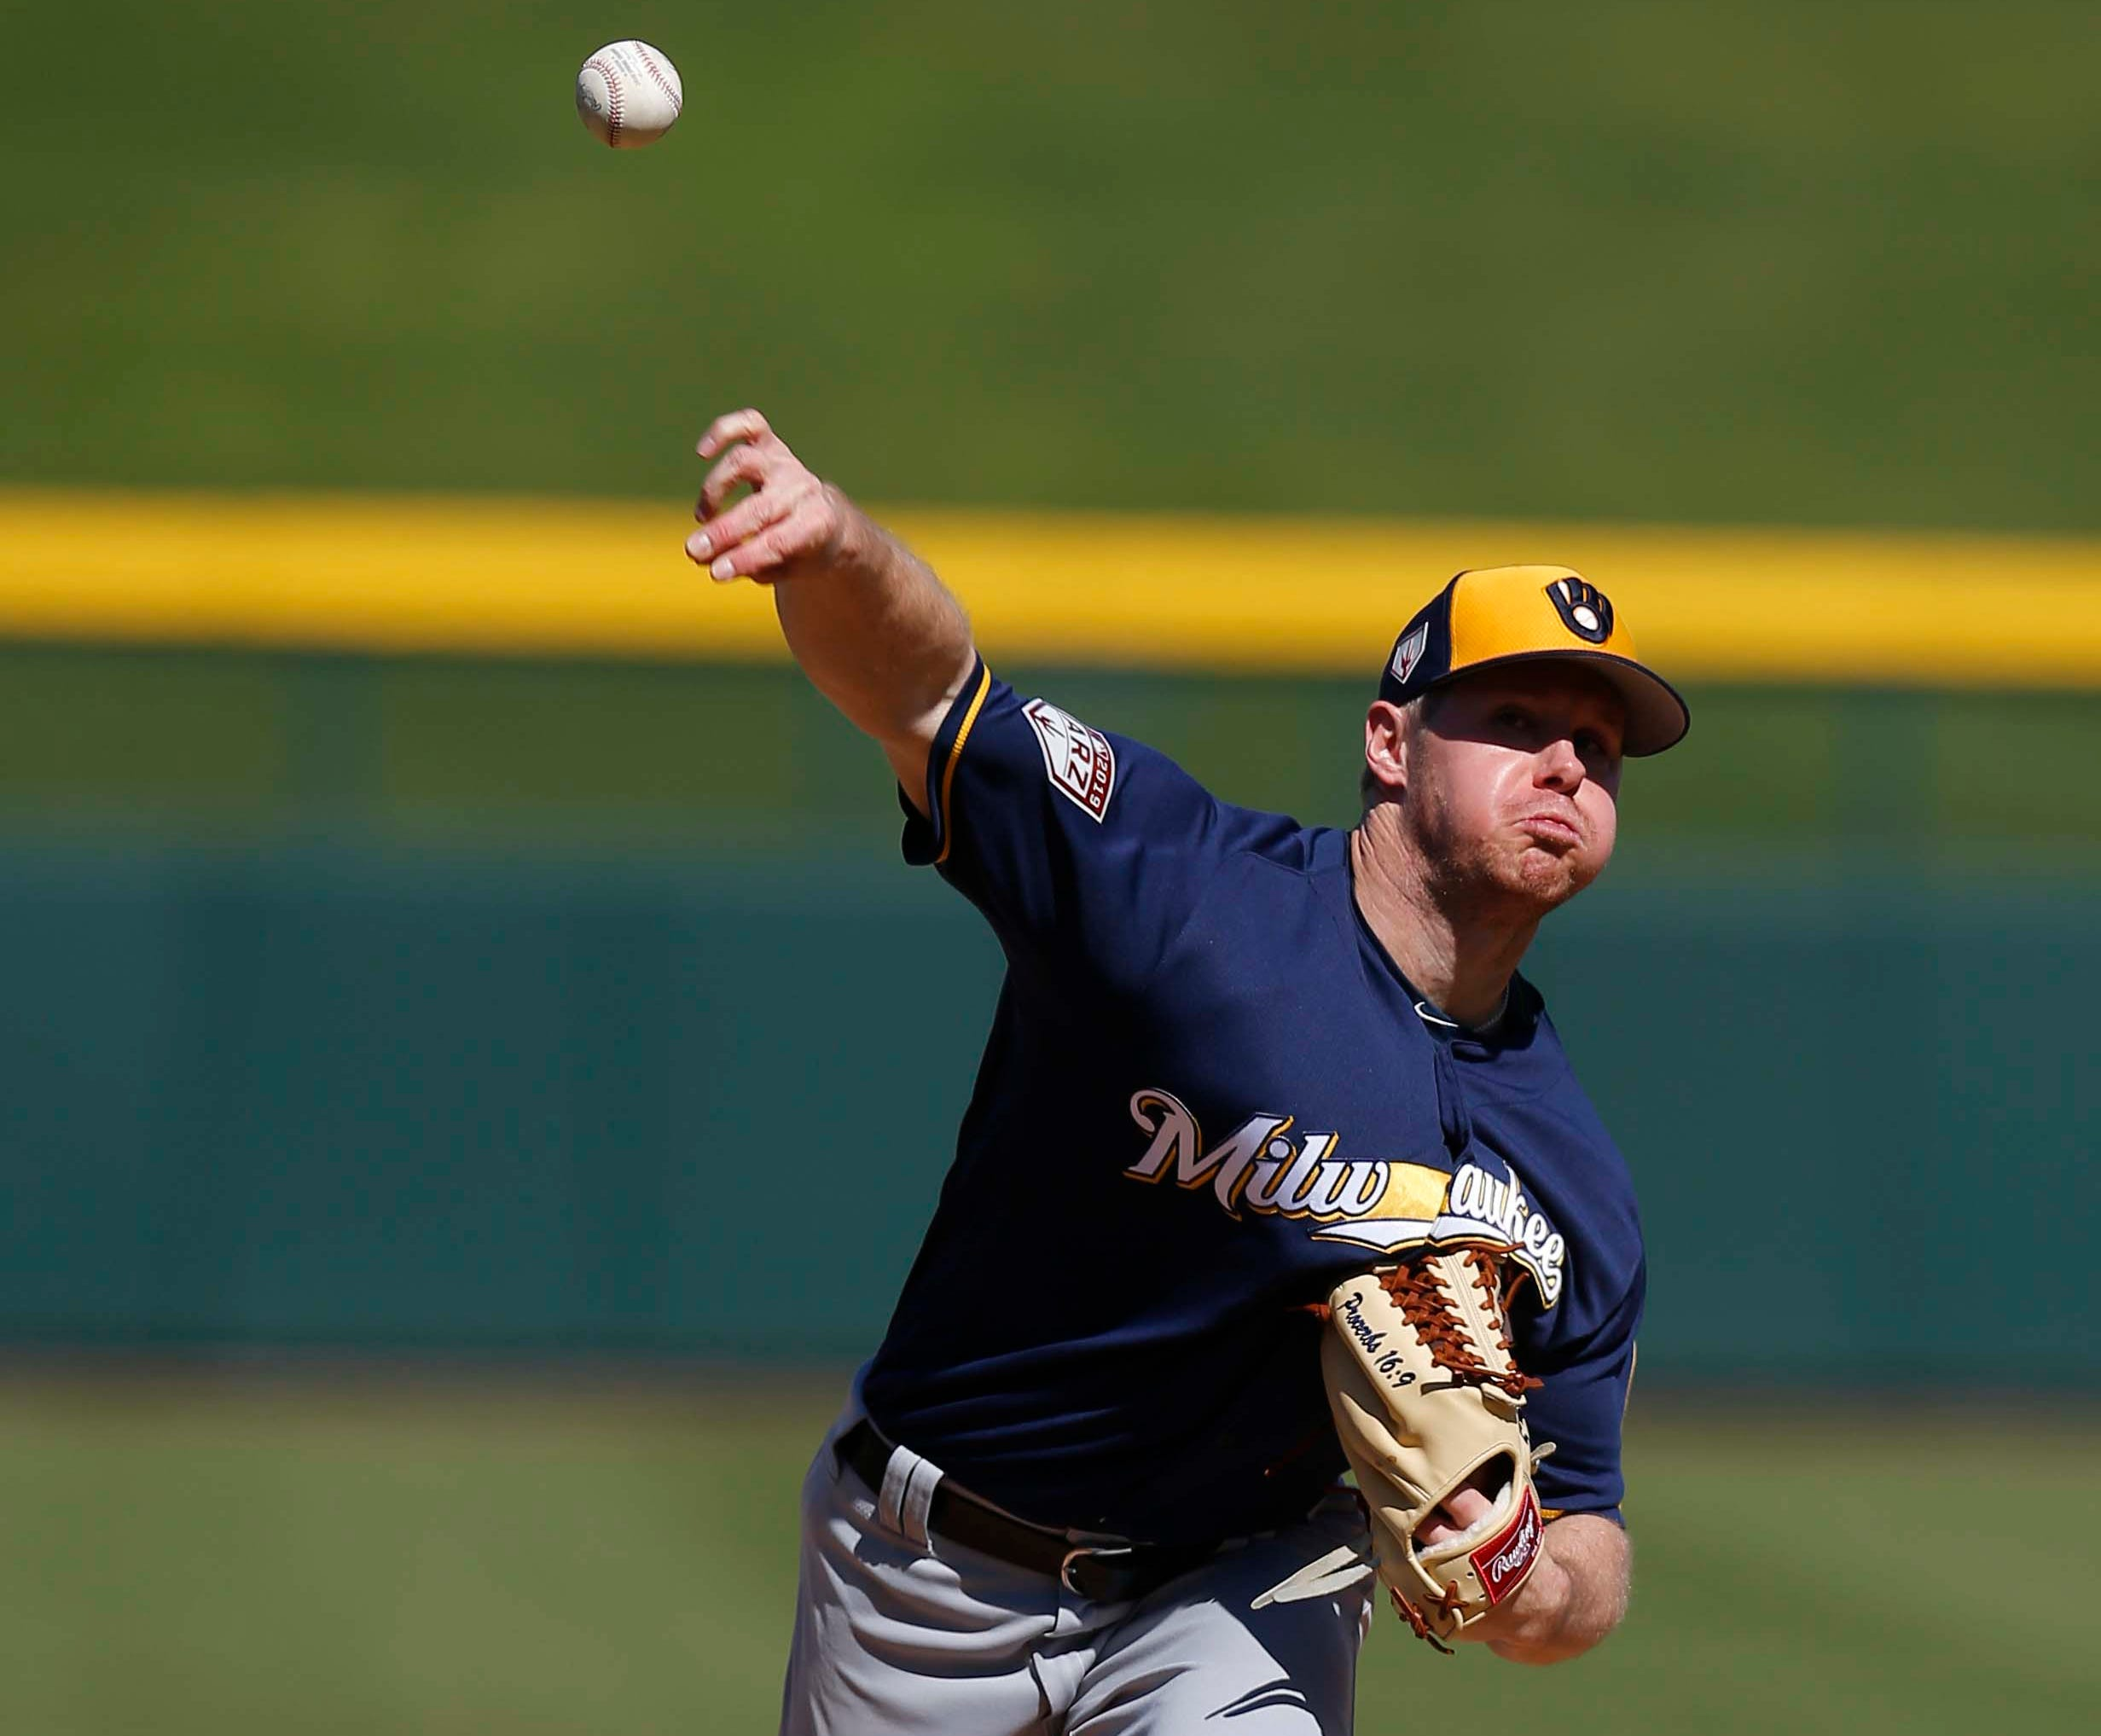 Brewers starting pitcher Chase Anderson gave up two runs, both coming on a homer by Kris Bryant, in his only inning of work against the Cubs in the teams' spring training opener Saturday.